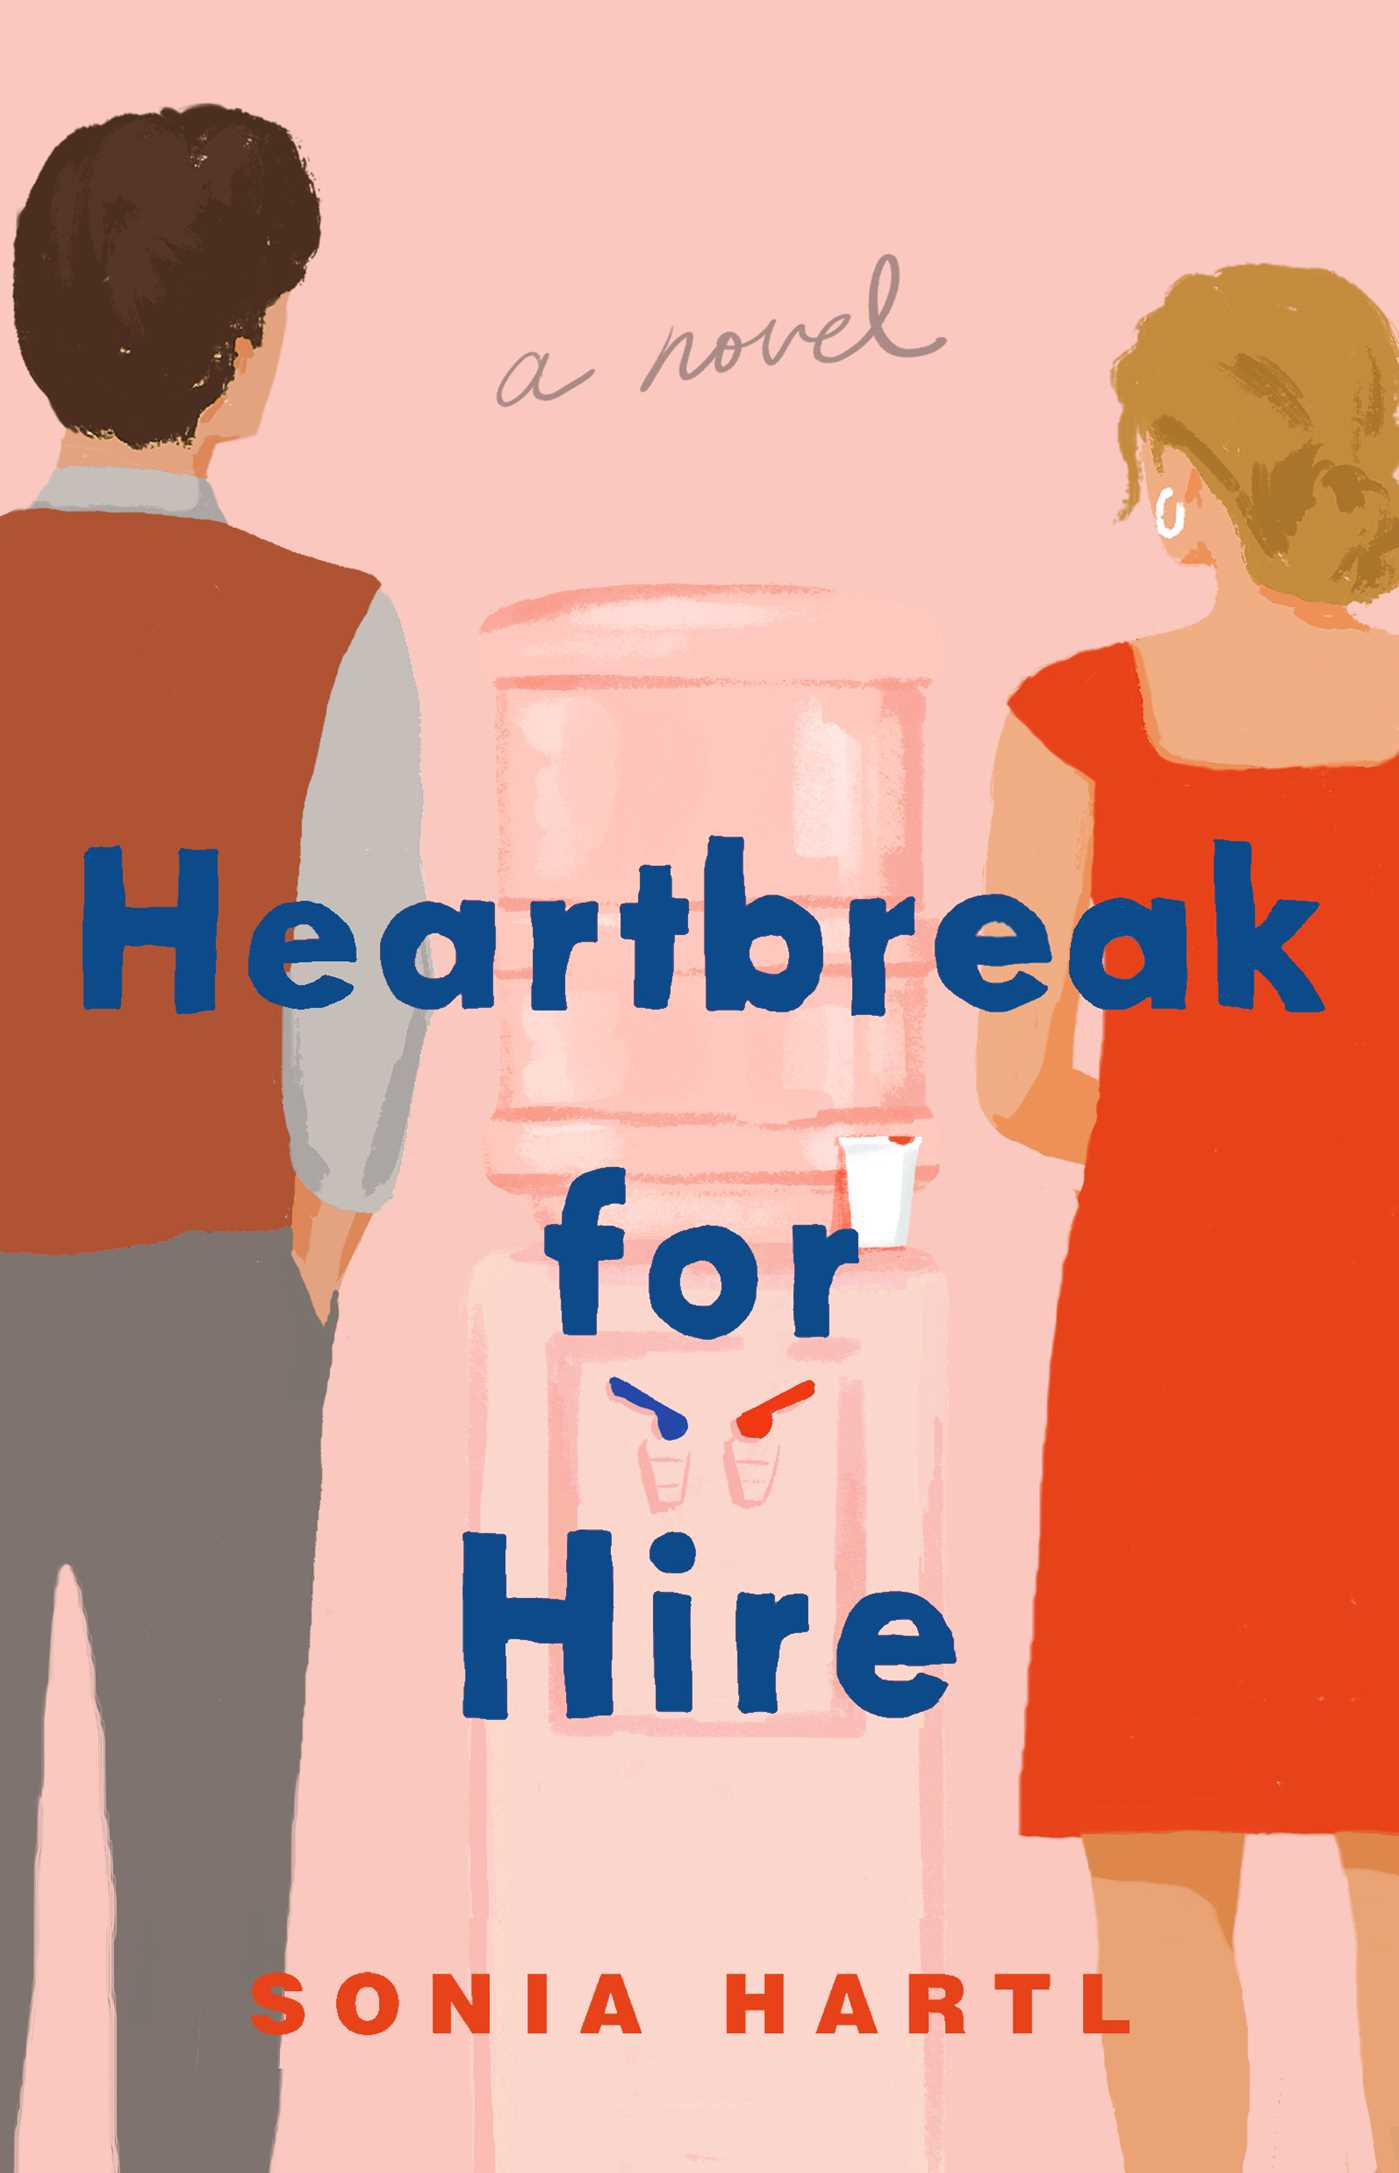 Heartbreak For Hire By Sonia Hartl Release Date? 2021 Contemporary Romance Releases